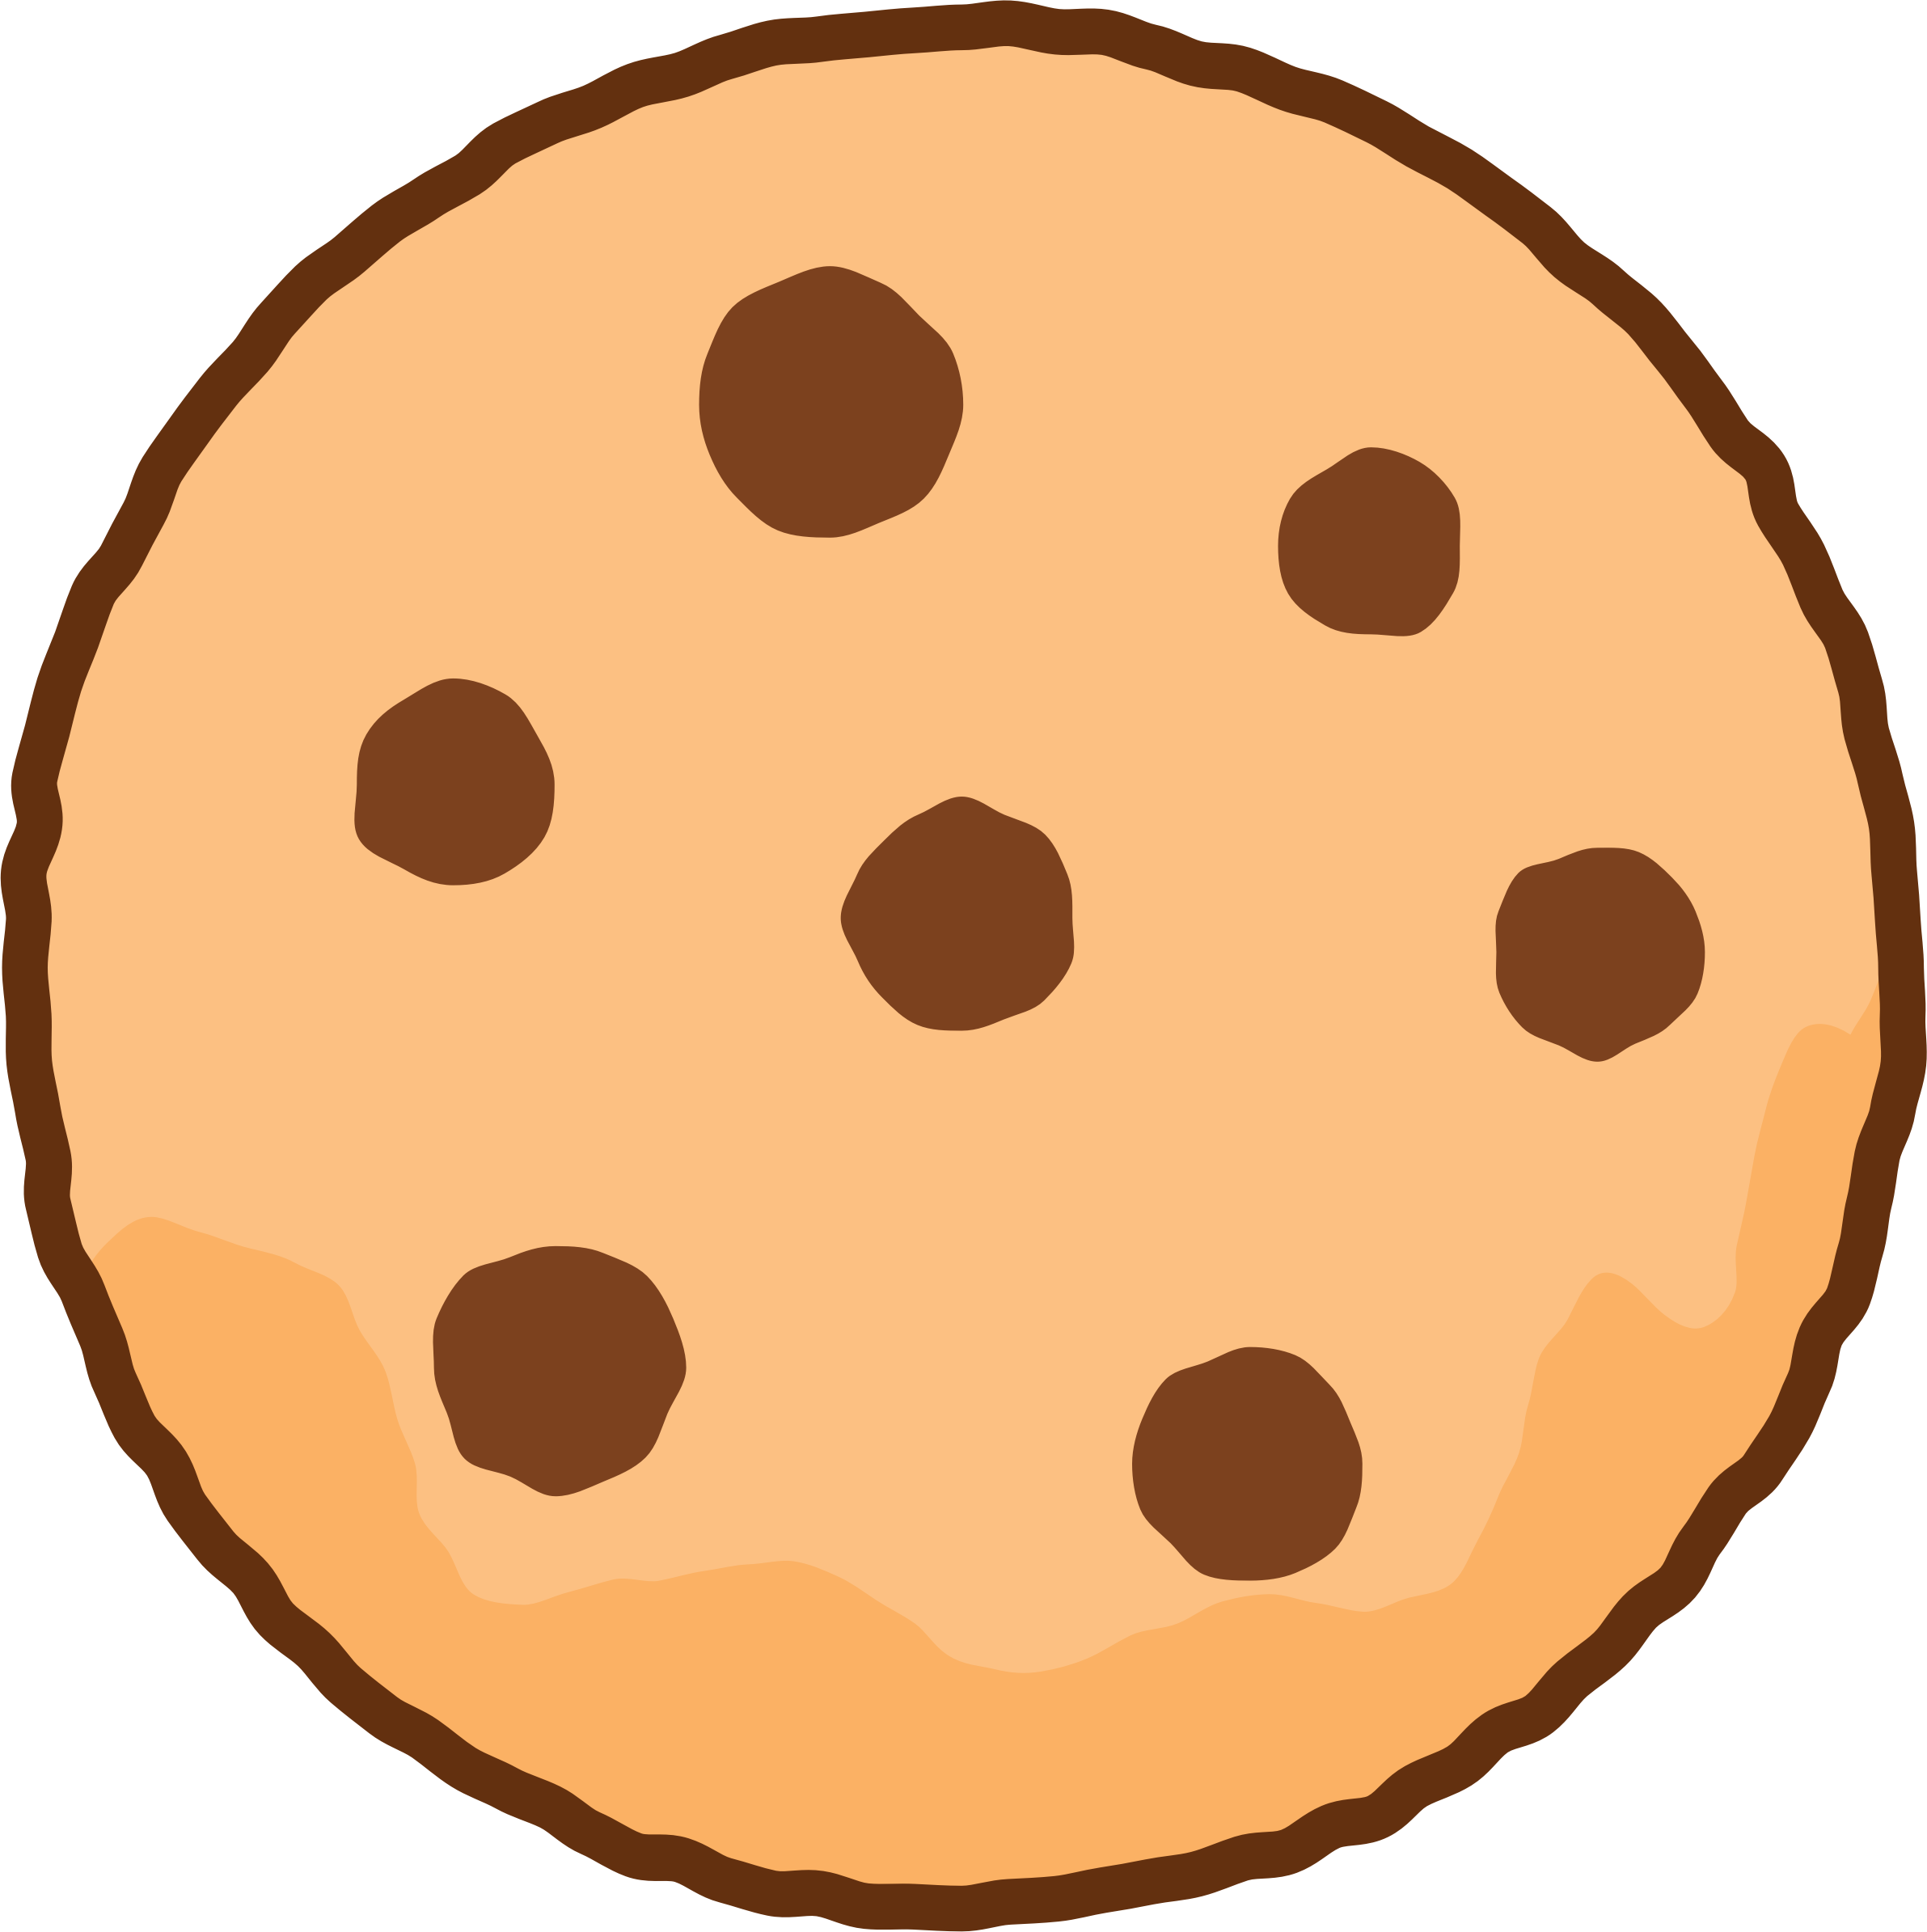 Cookie By Jack7 Cookie Vector Simple Illustration Cookie Clipart